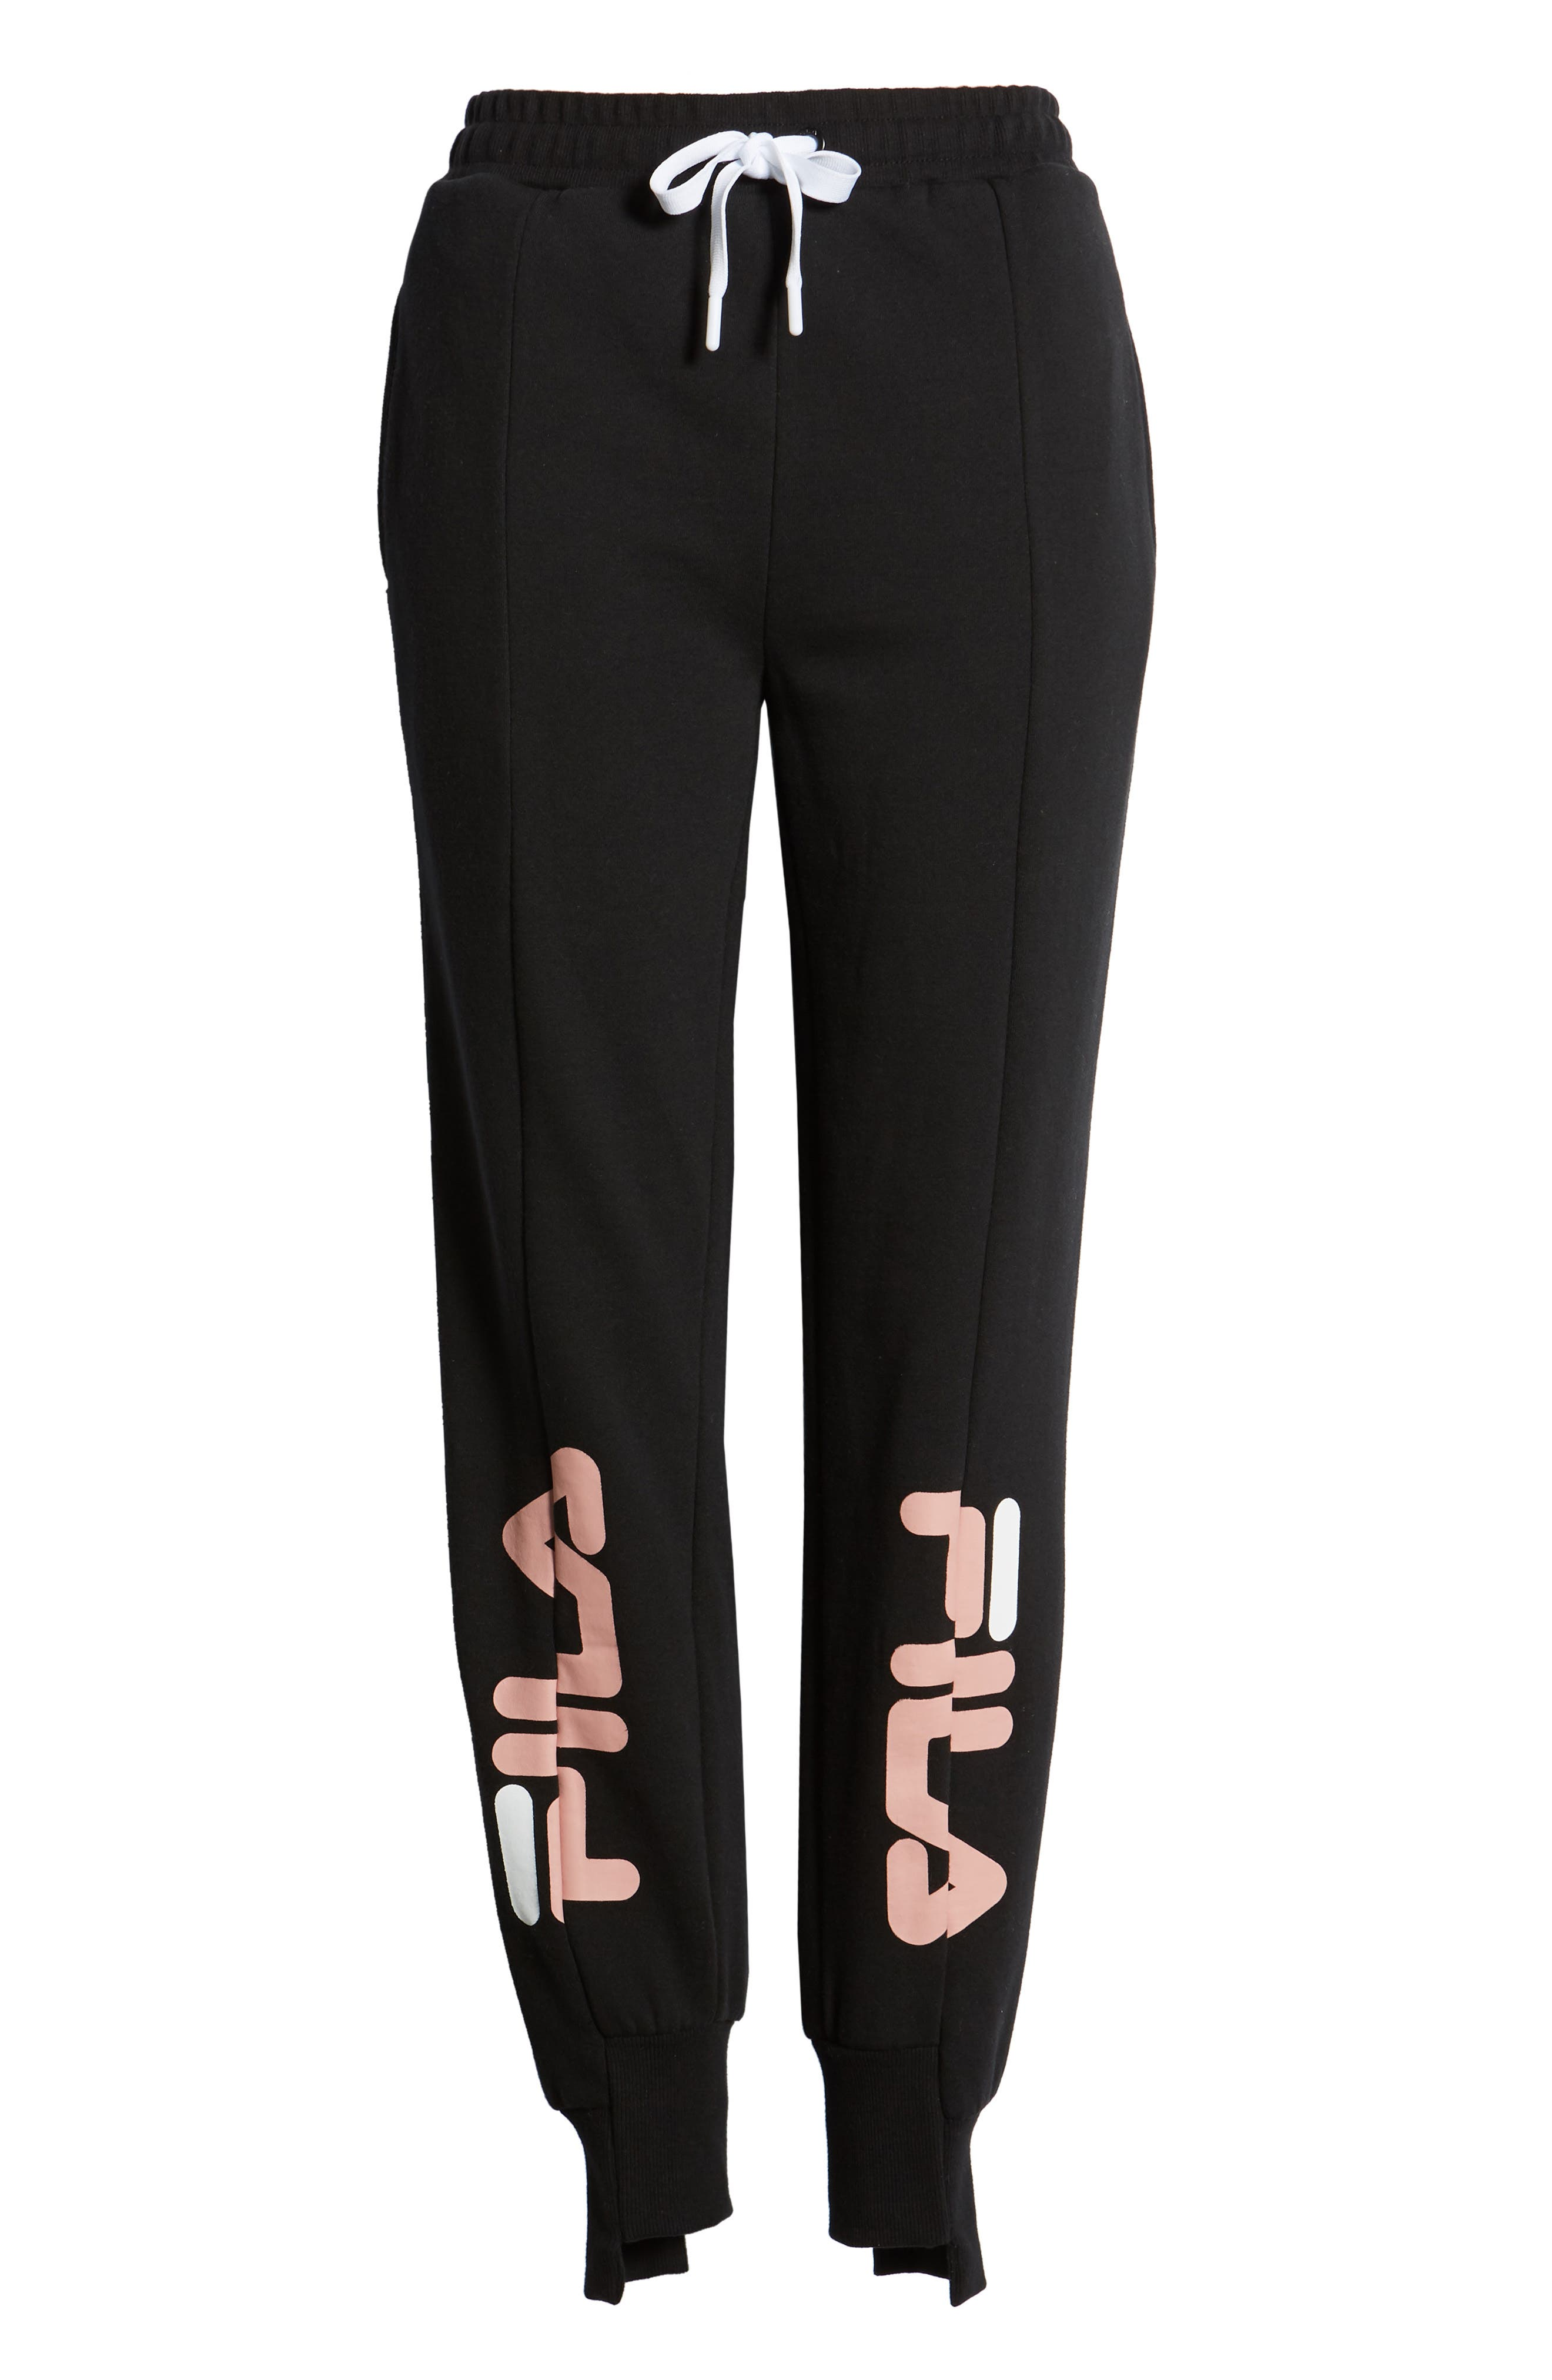 FILA, Alessia Reconstructed Joggers, Alternate thumbnail 7, color, 002